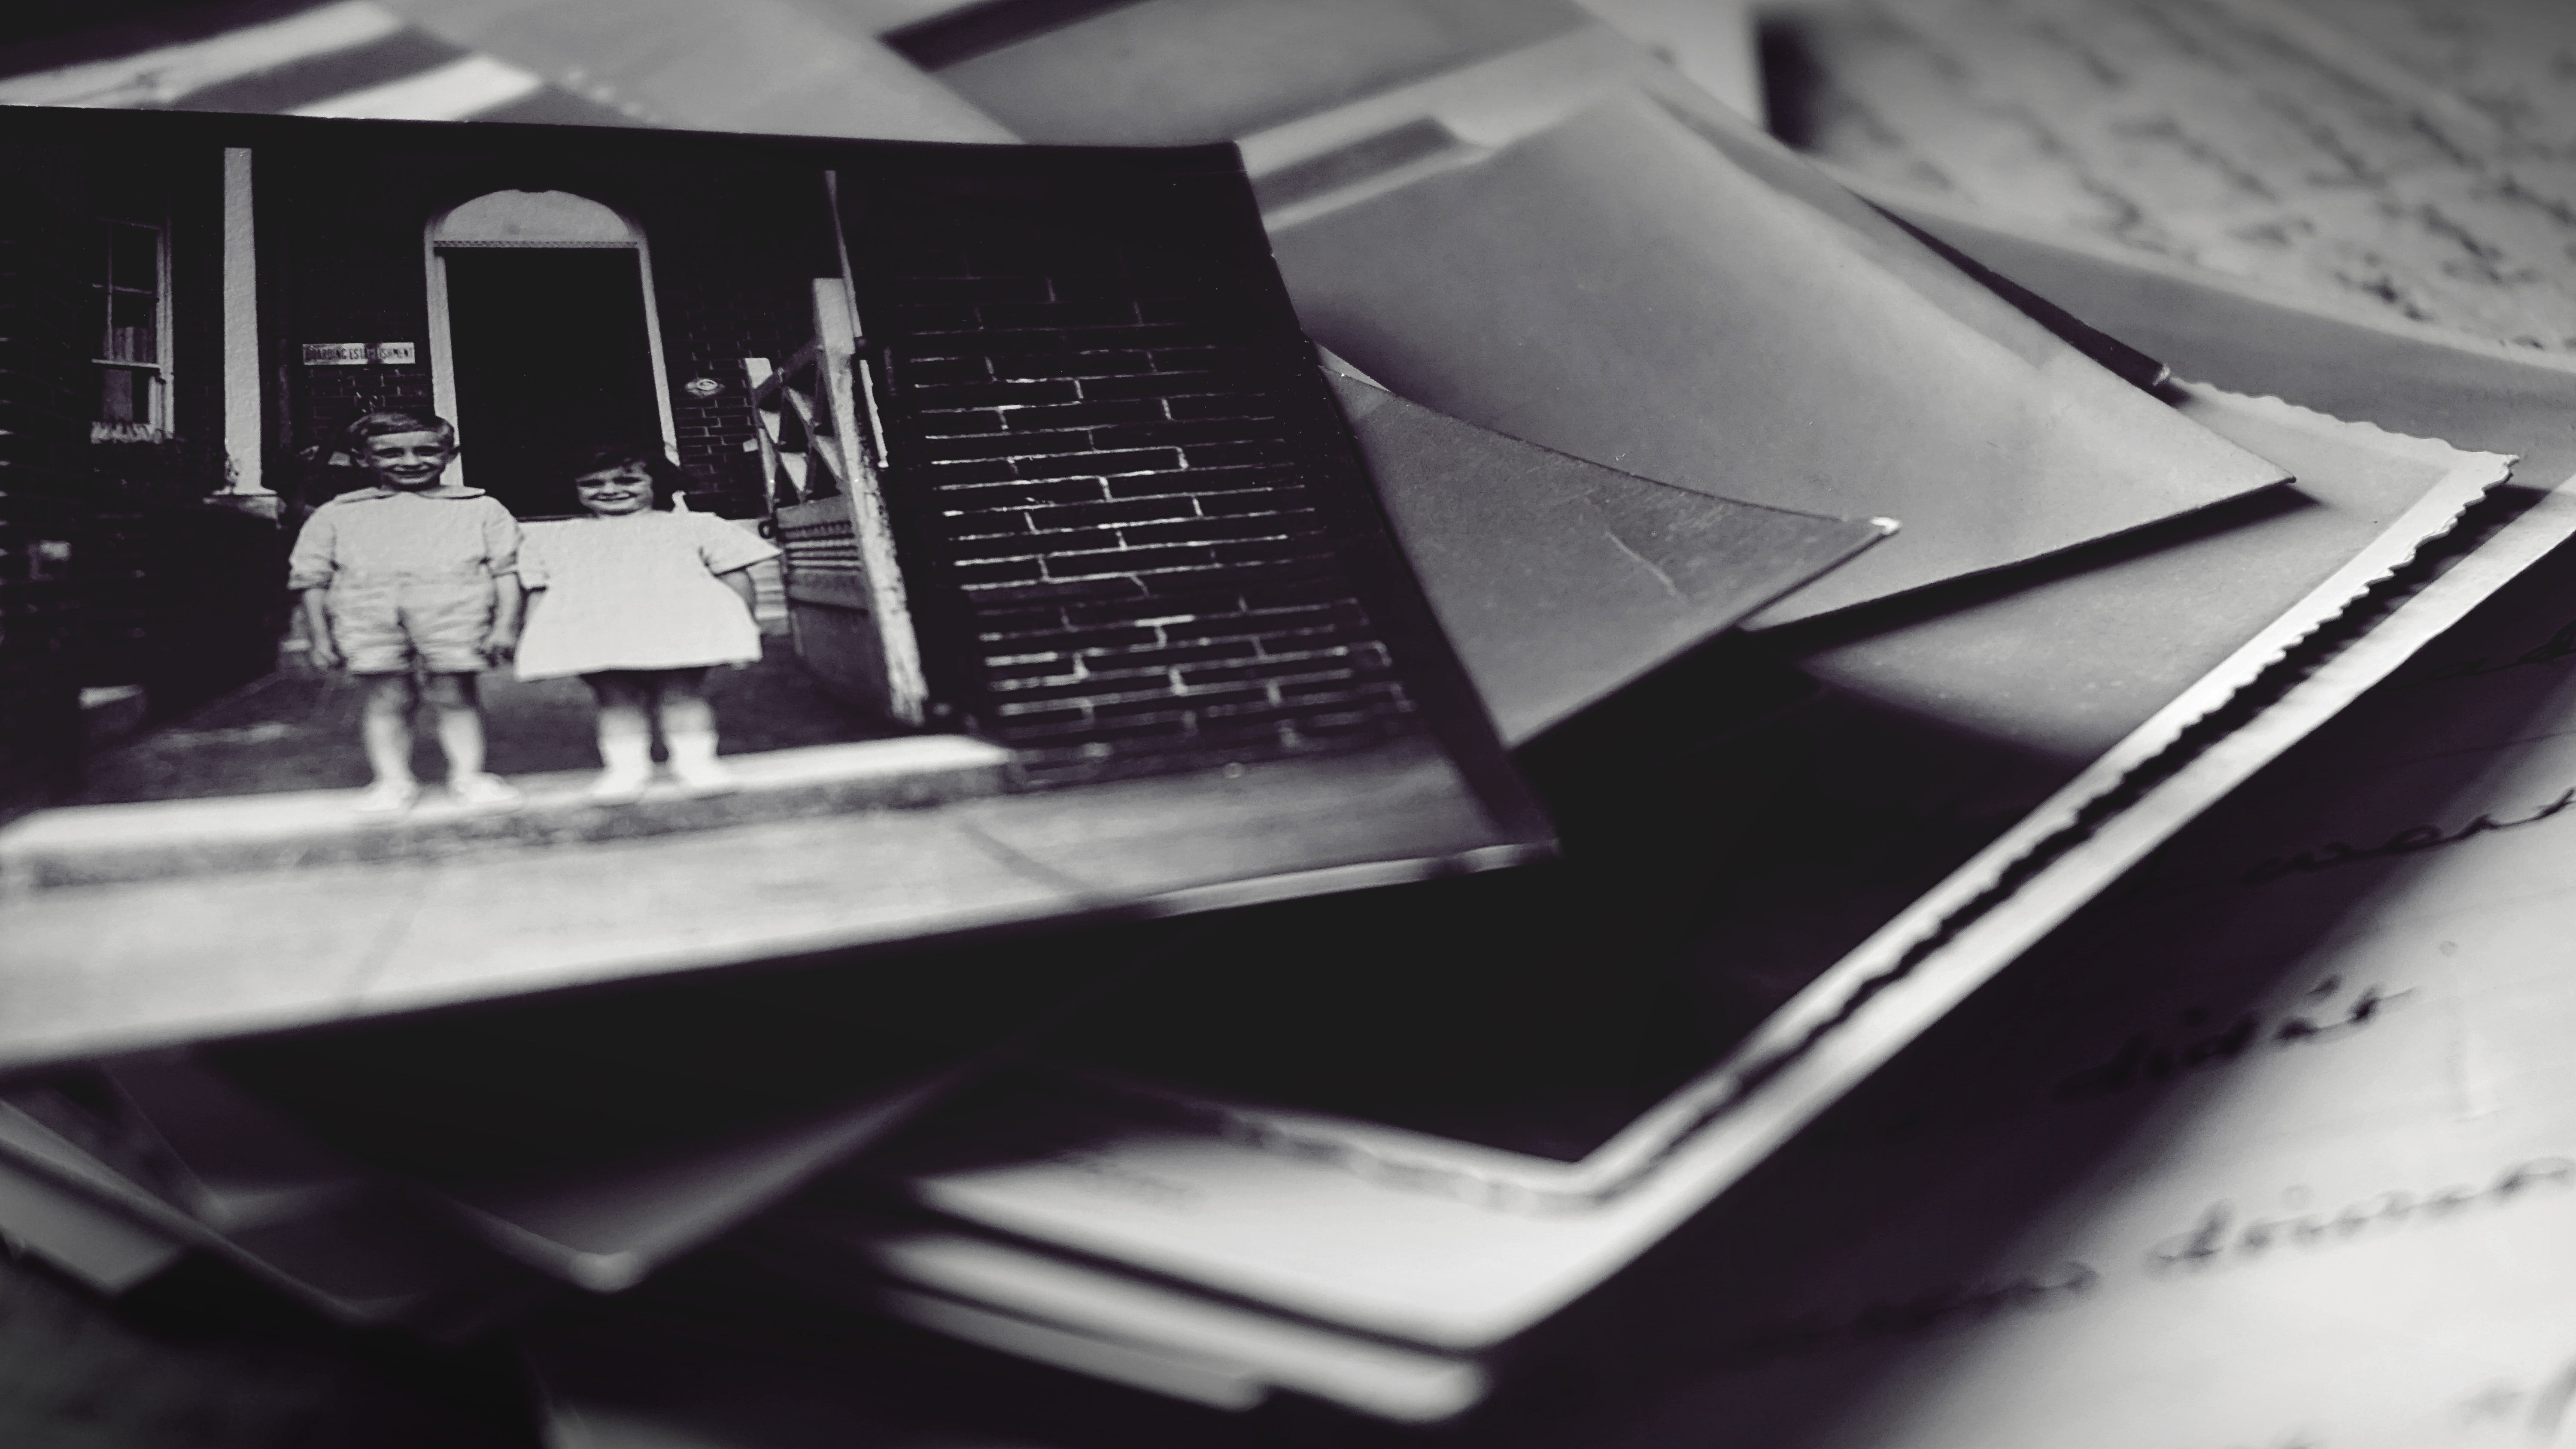 Grayscale Photography Of Pile Of Photographs